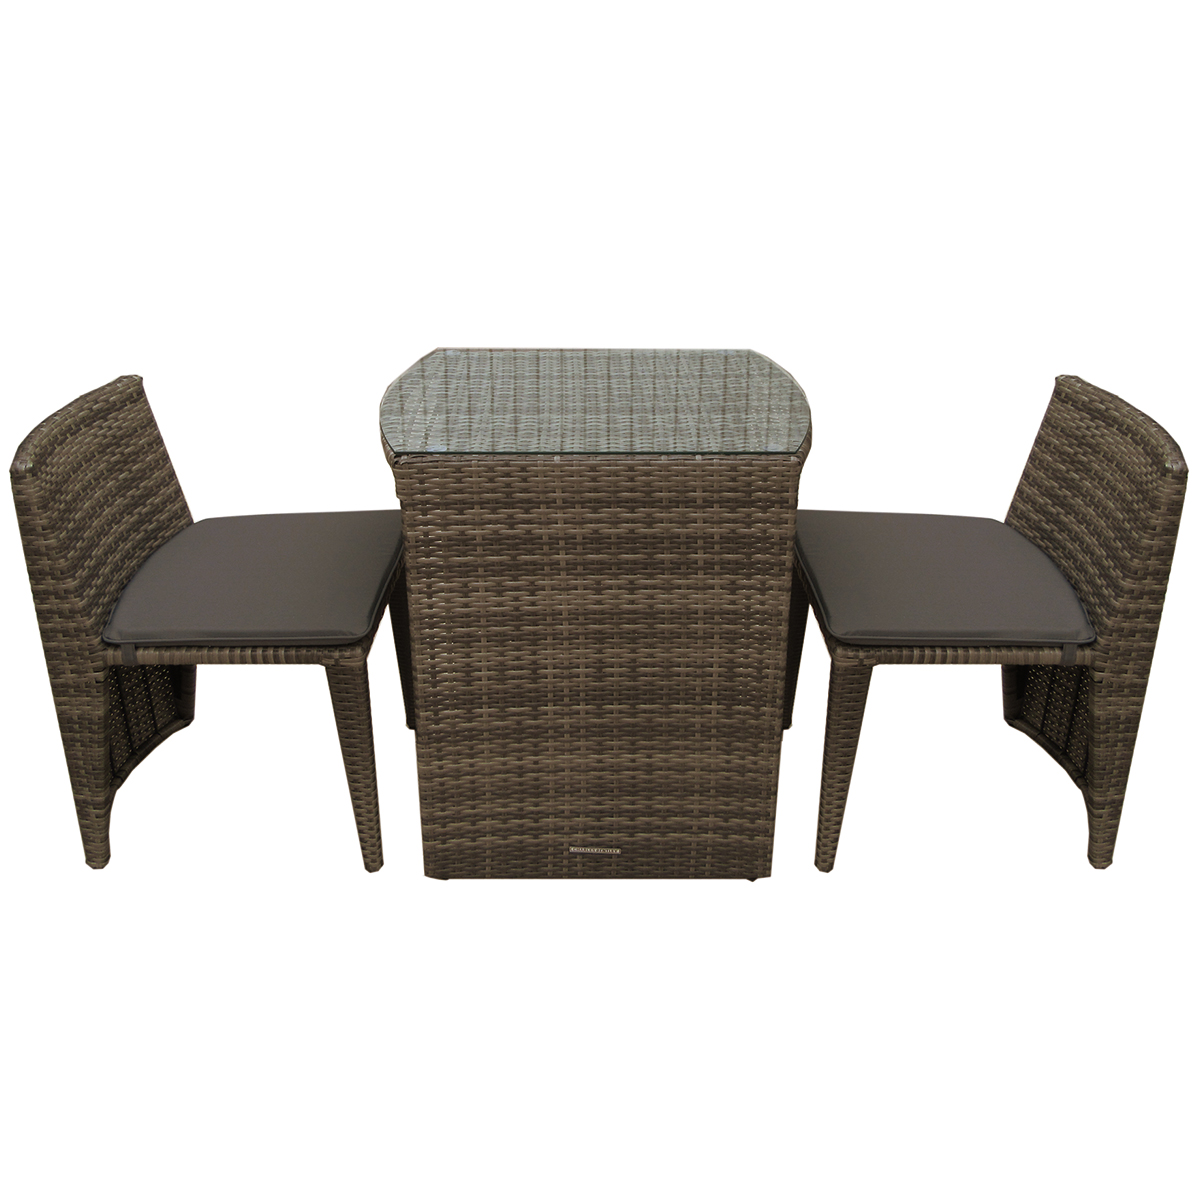 Two Seater Rattan Garden Furniture Charles bentley 2 seater rattan garden balcony furniture set grey charles bentley 2 seater rattan garden balcony furniture workwithnaturefo